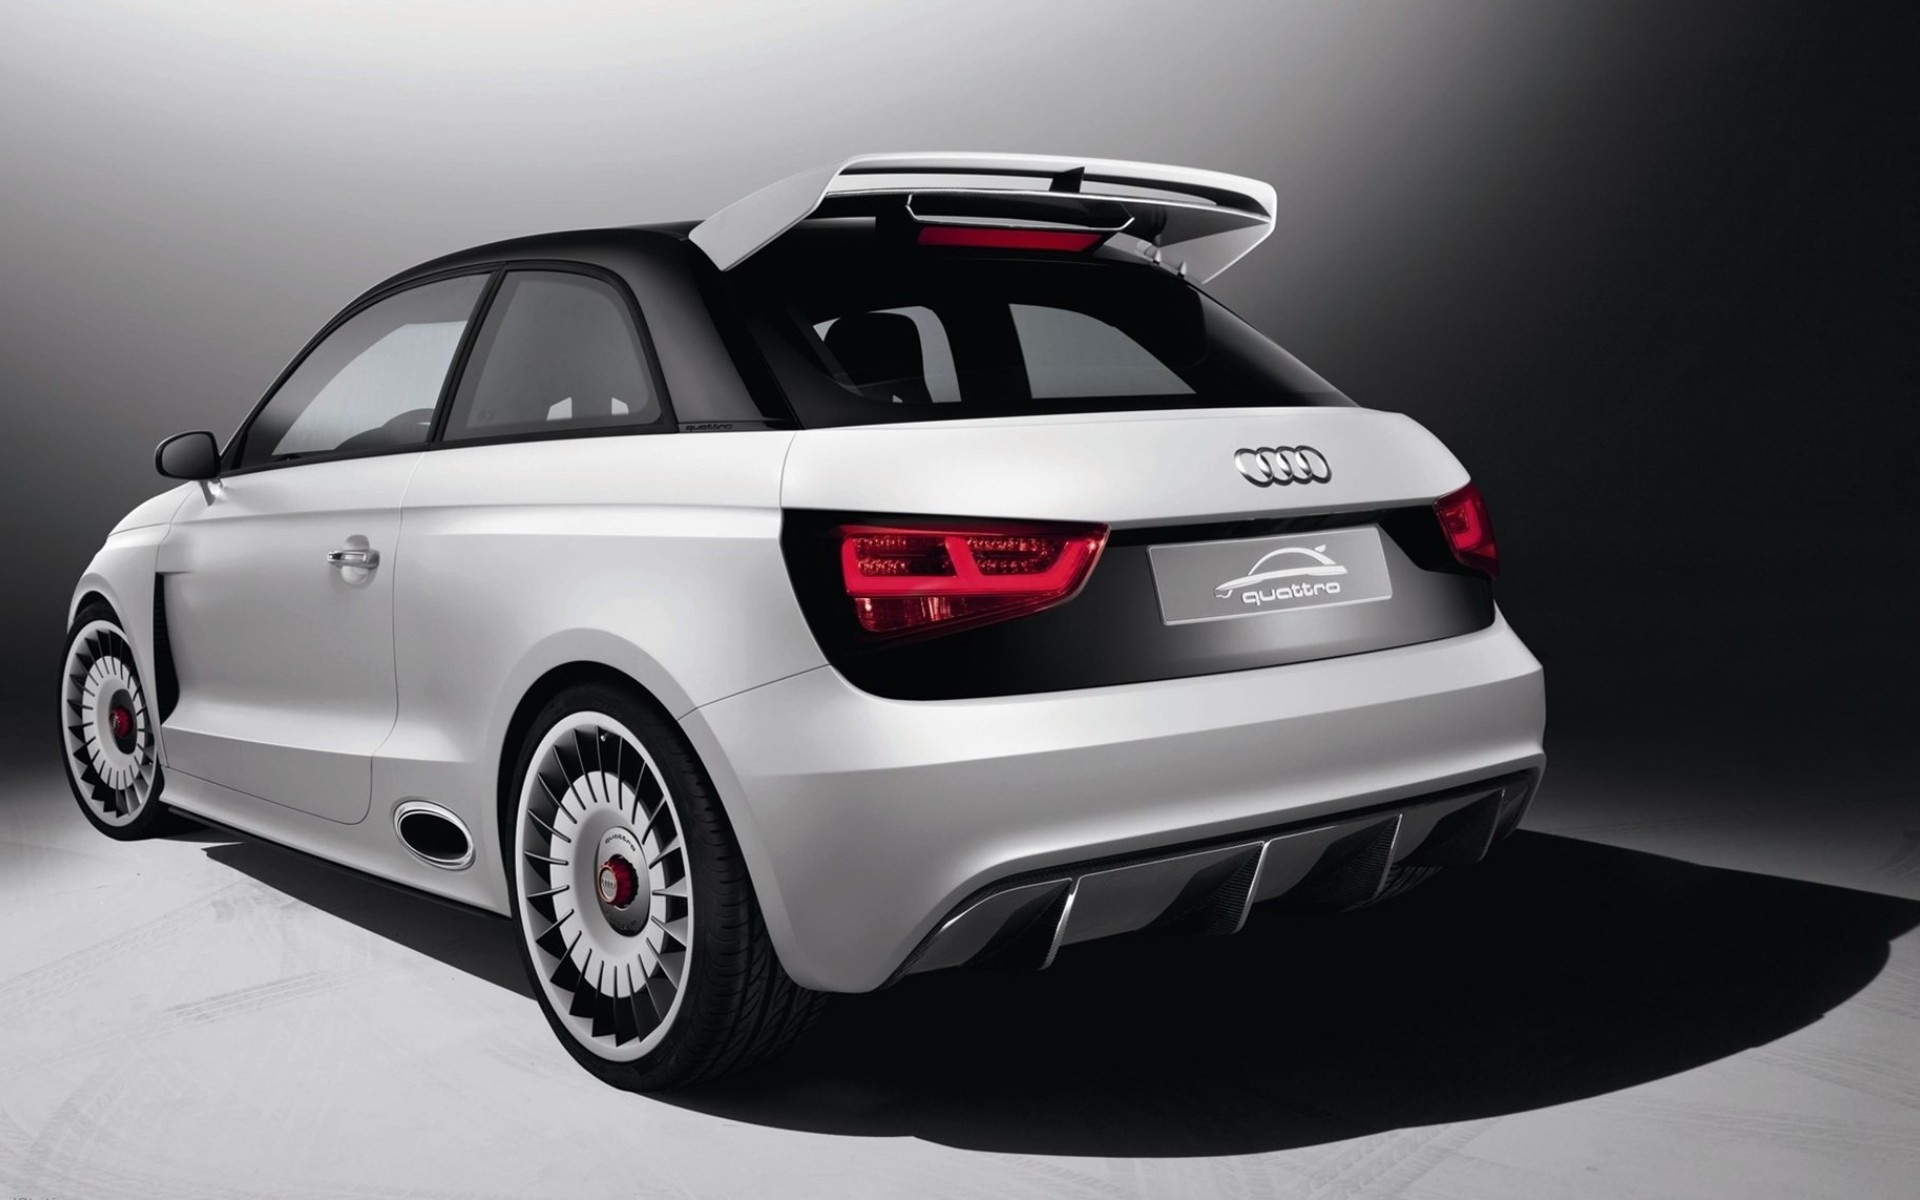 2019 Audi A1 clubsport quattro Concept photo - 6